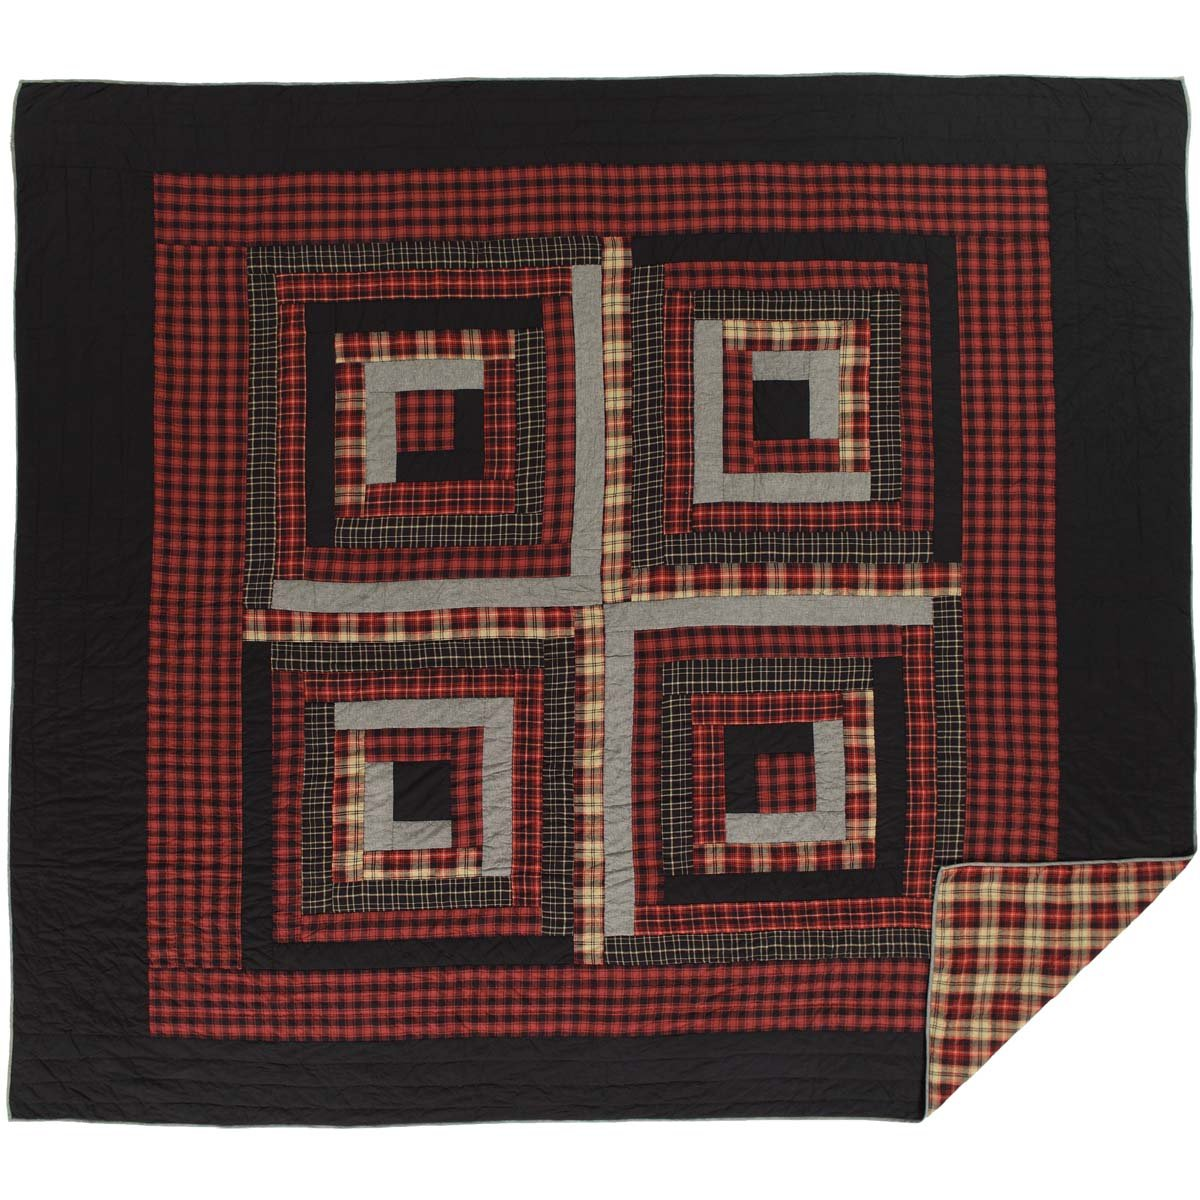 VHC Brands Rustic & Lodge Bedding-Cumberland Quilt, Luxury King, Chili Pepper Red